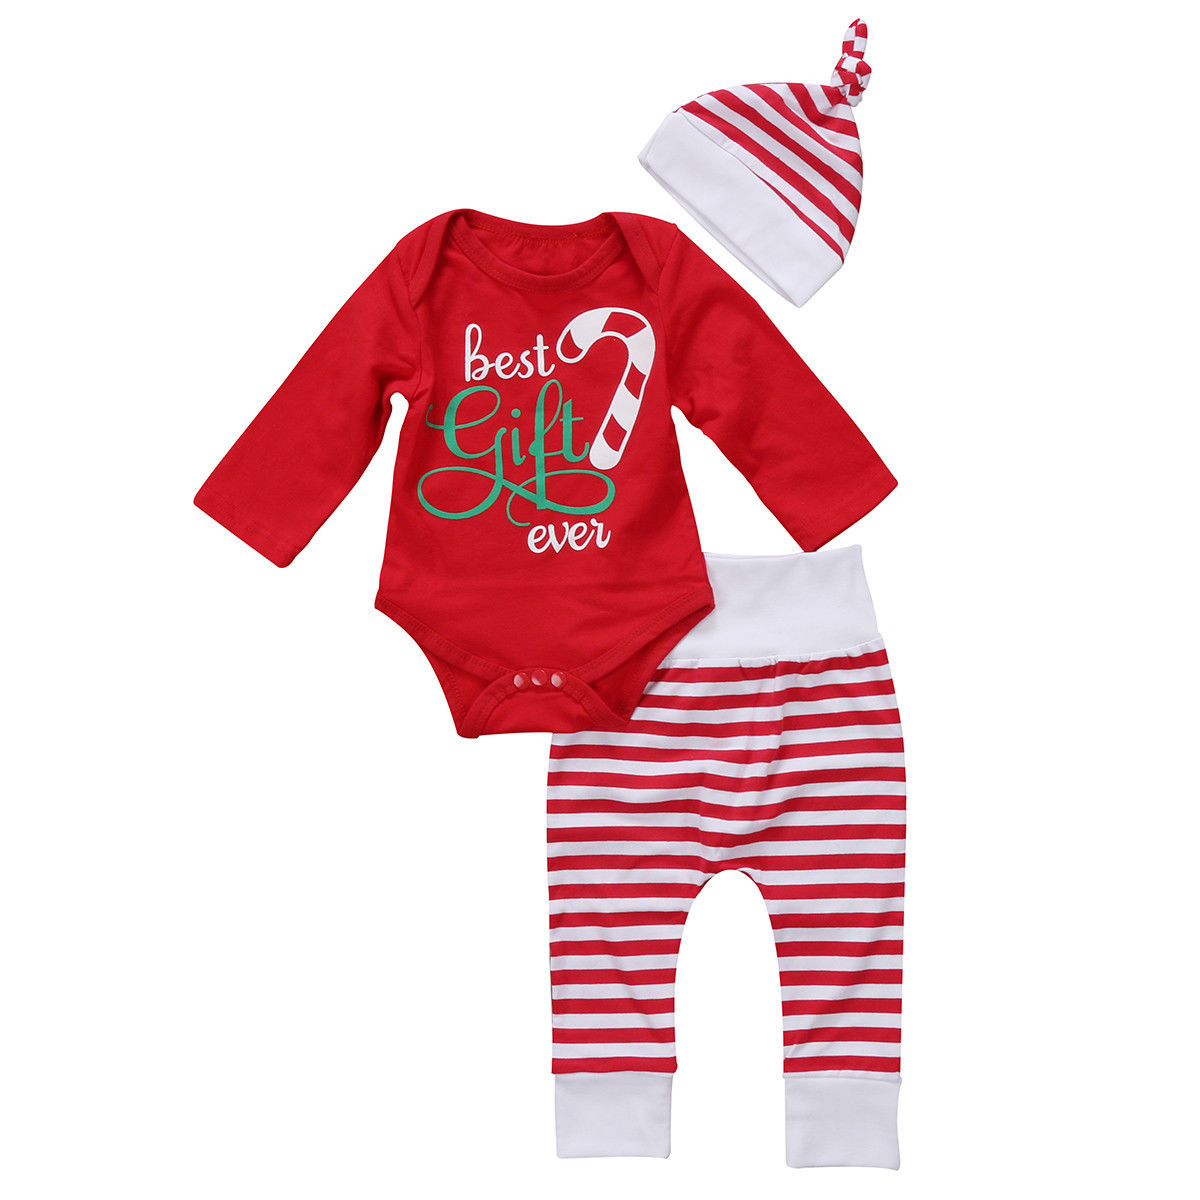 2017 Brand New 3PCS Set Newborn Toddler Infant Baby Girl Boy Clothes Romper Long Sleeve Shirt Tops Pants Hat Santa Candy Outfits 2017 baby girl summer romper newborn baby romper suits infant boy cotton toddler striped clothes baby boy short sleeve jumpsuits